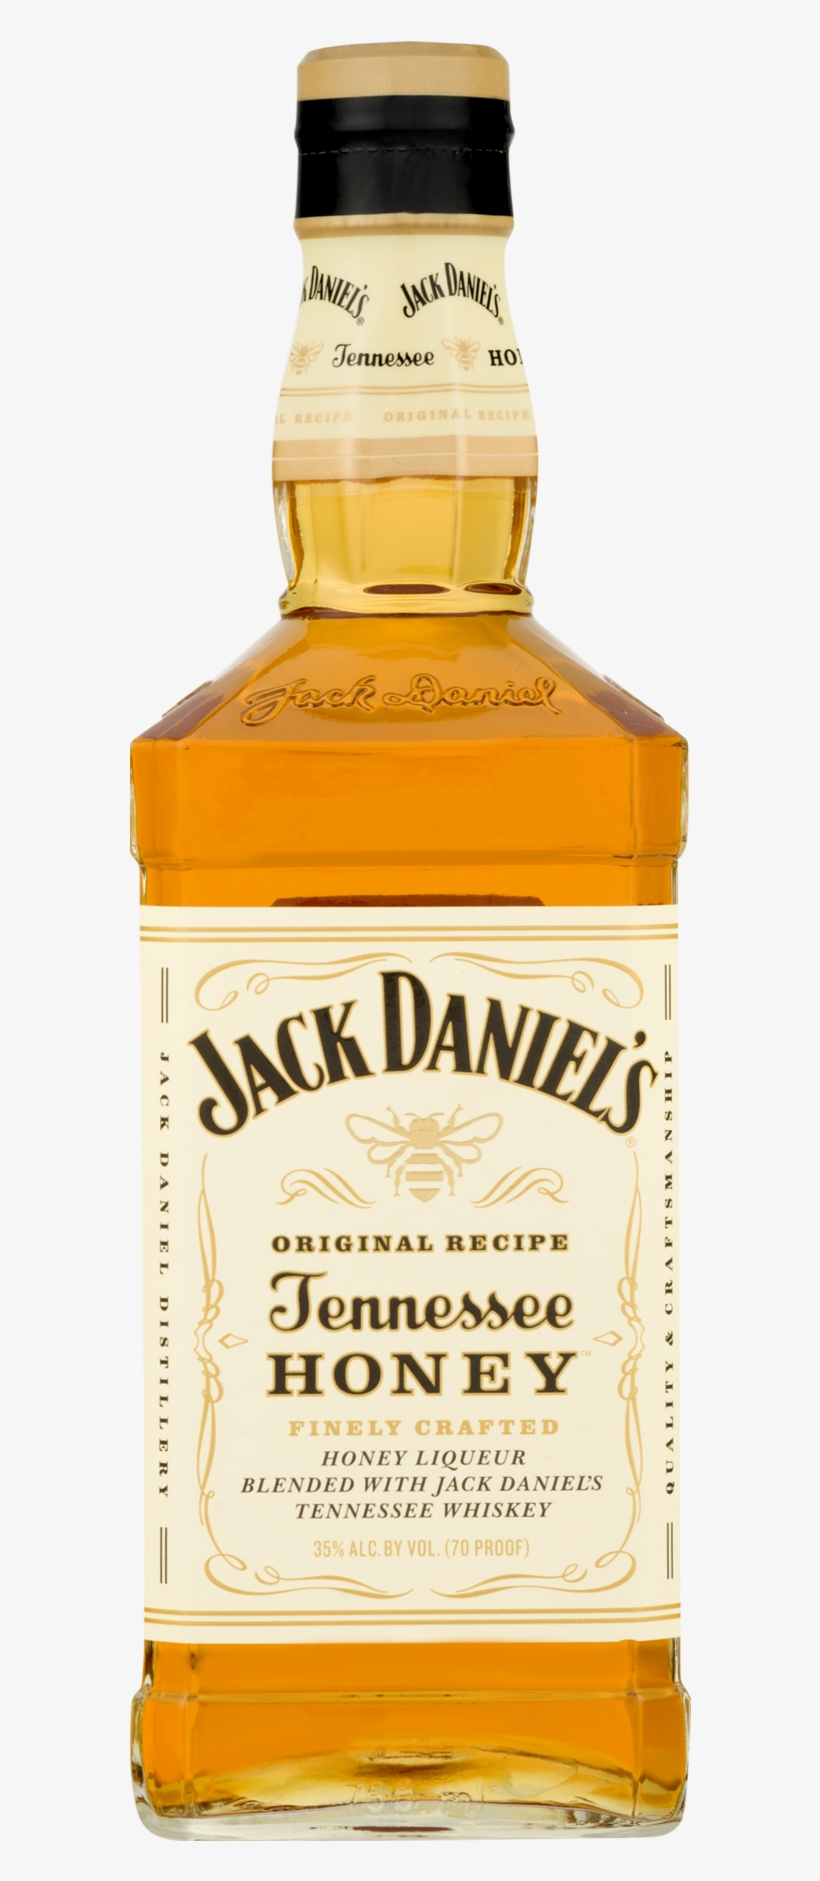 Jack Daniels Tennessee Honey Is A Blend Of Jack Daniels - Jack Daniels White Honey, transparent png #786479